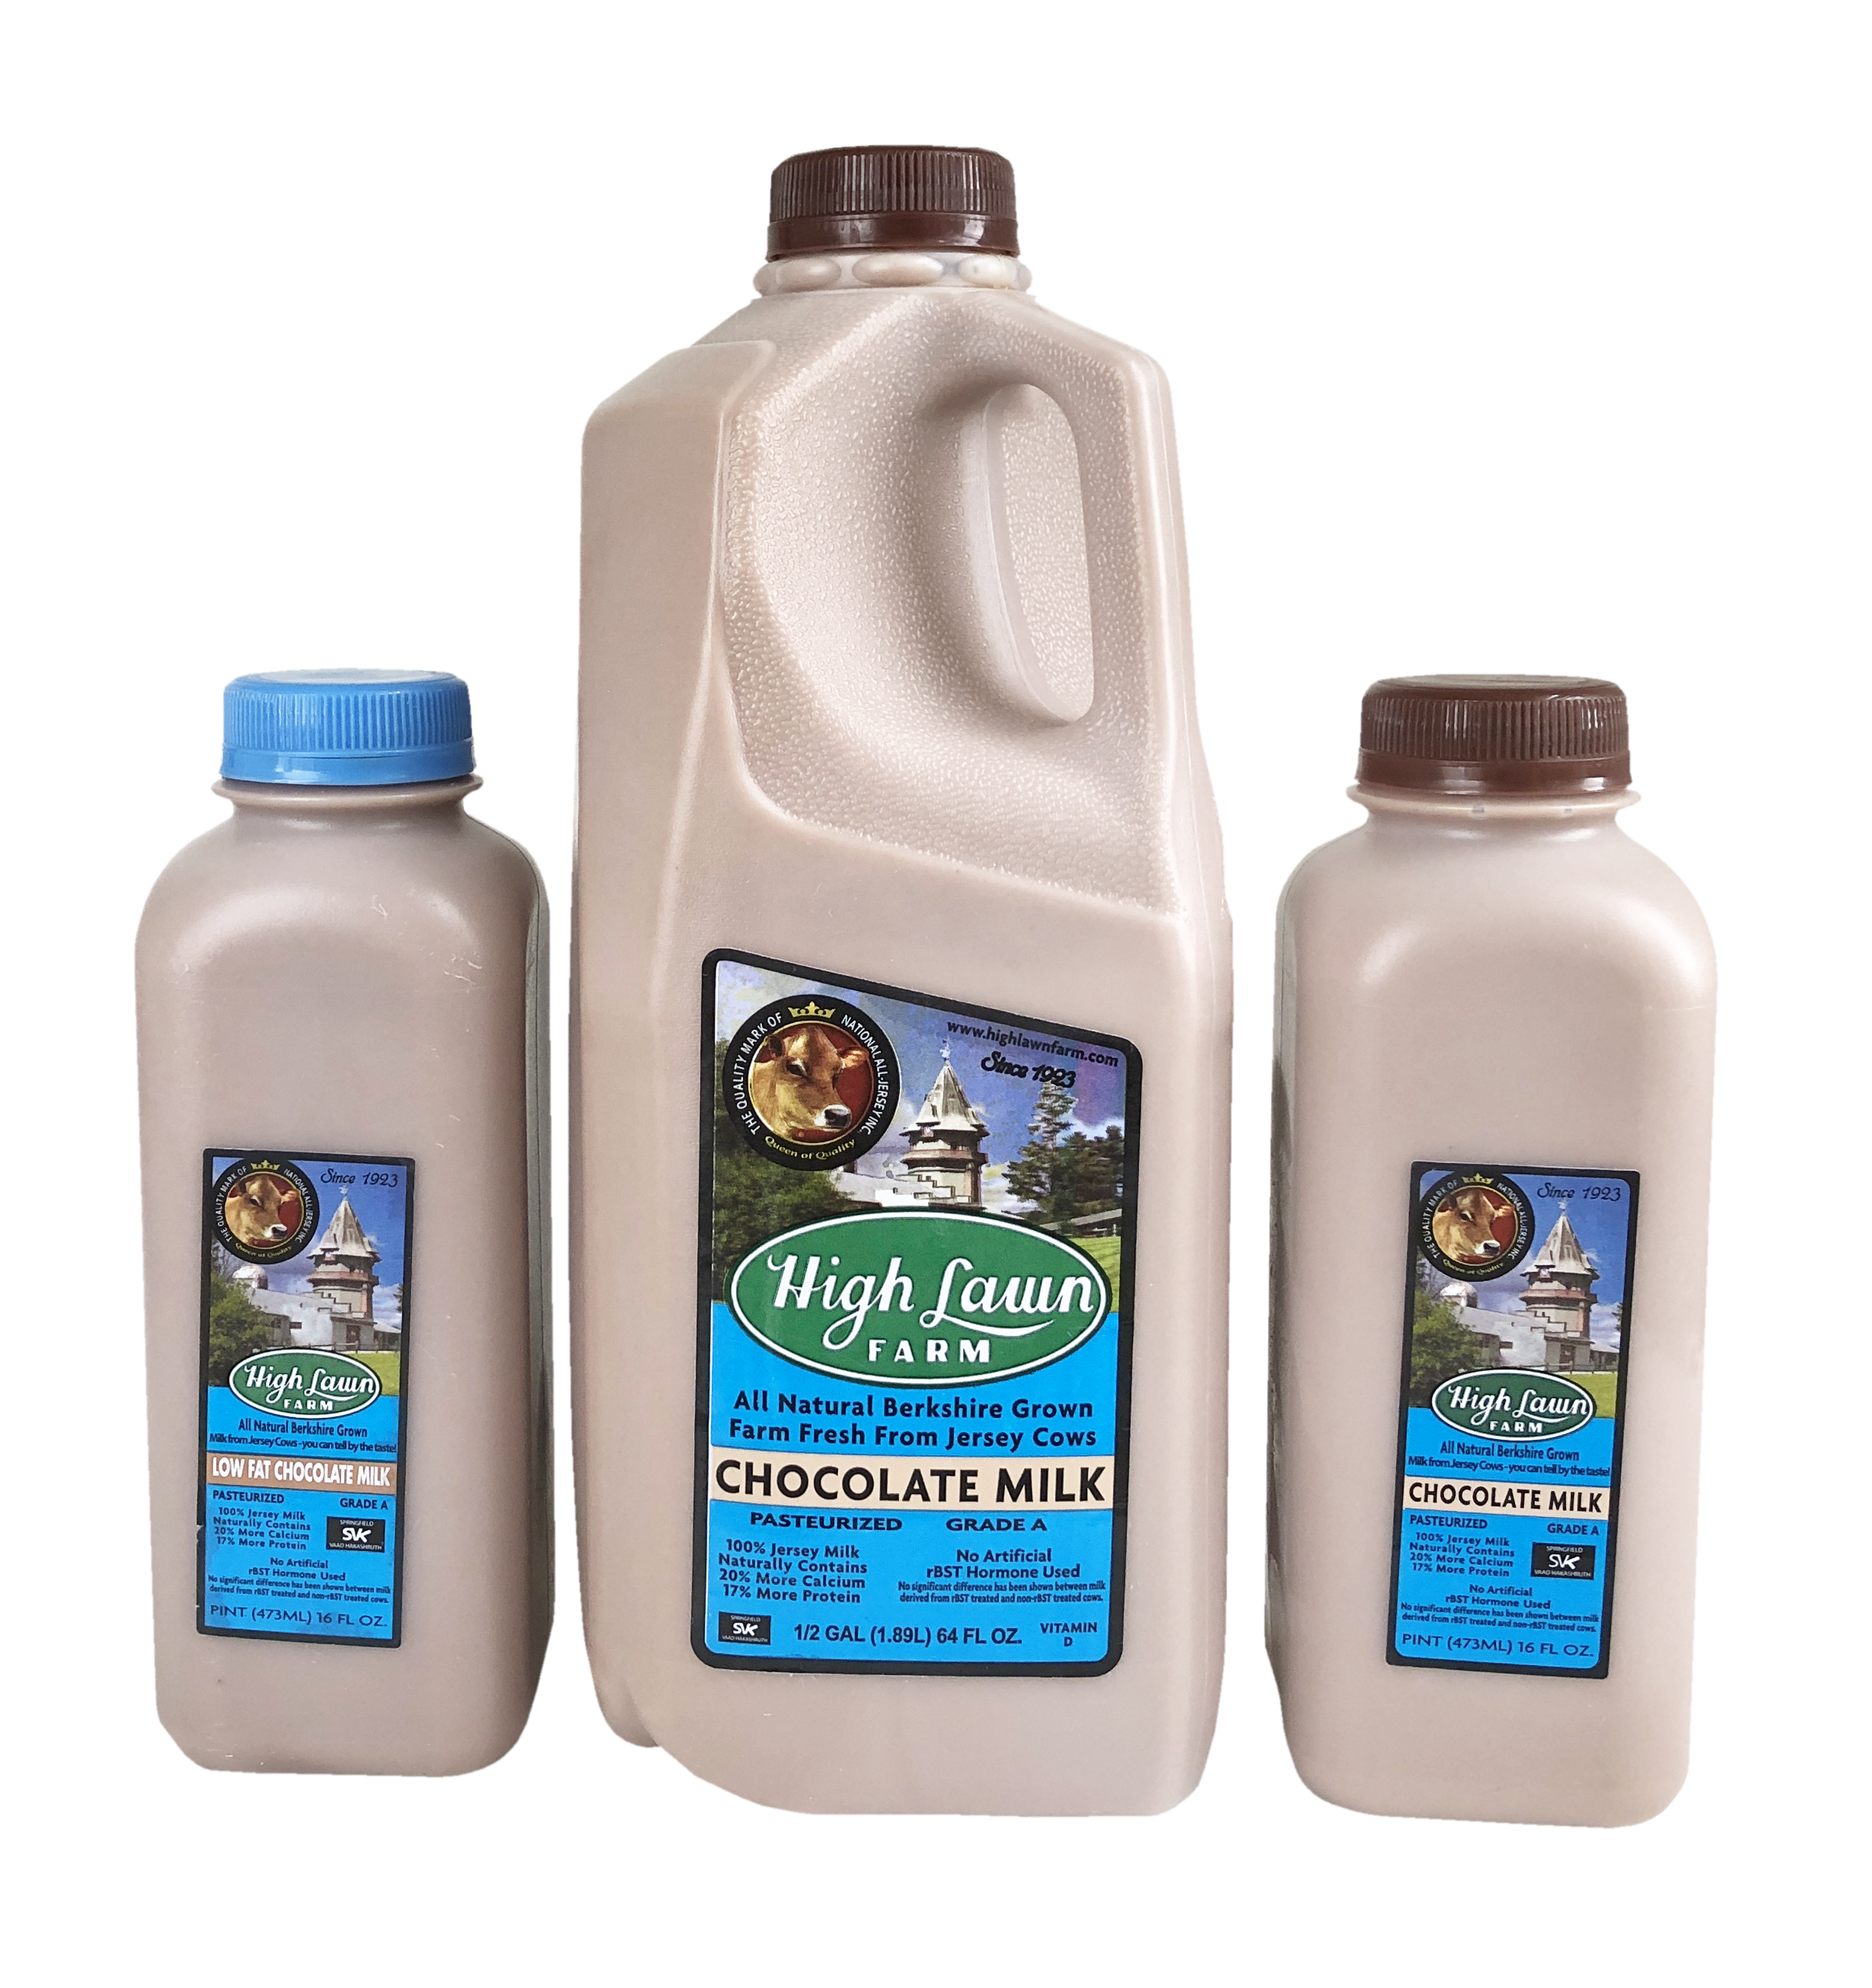 high_lawn_farm_chocolate_milk_trio